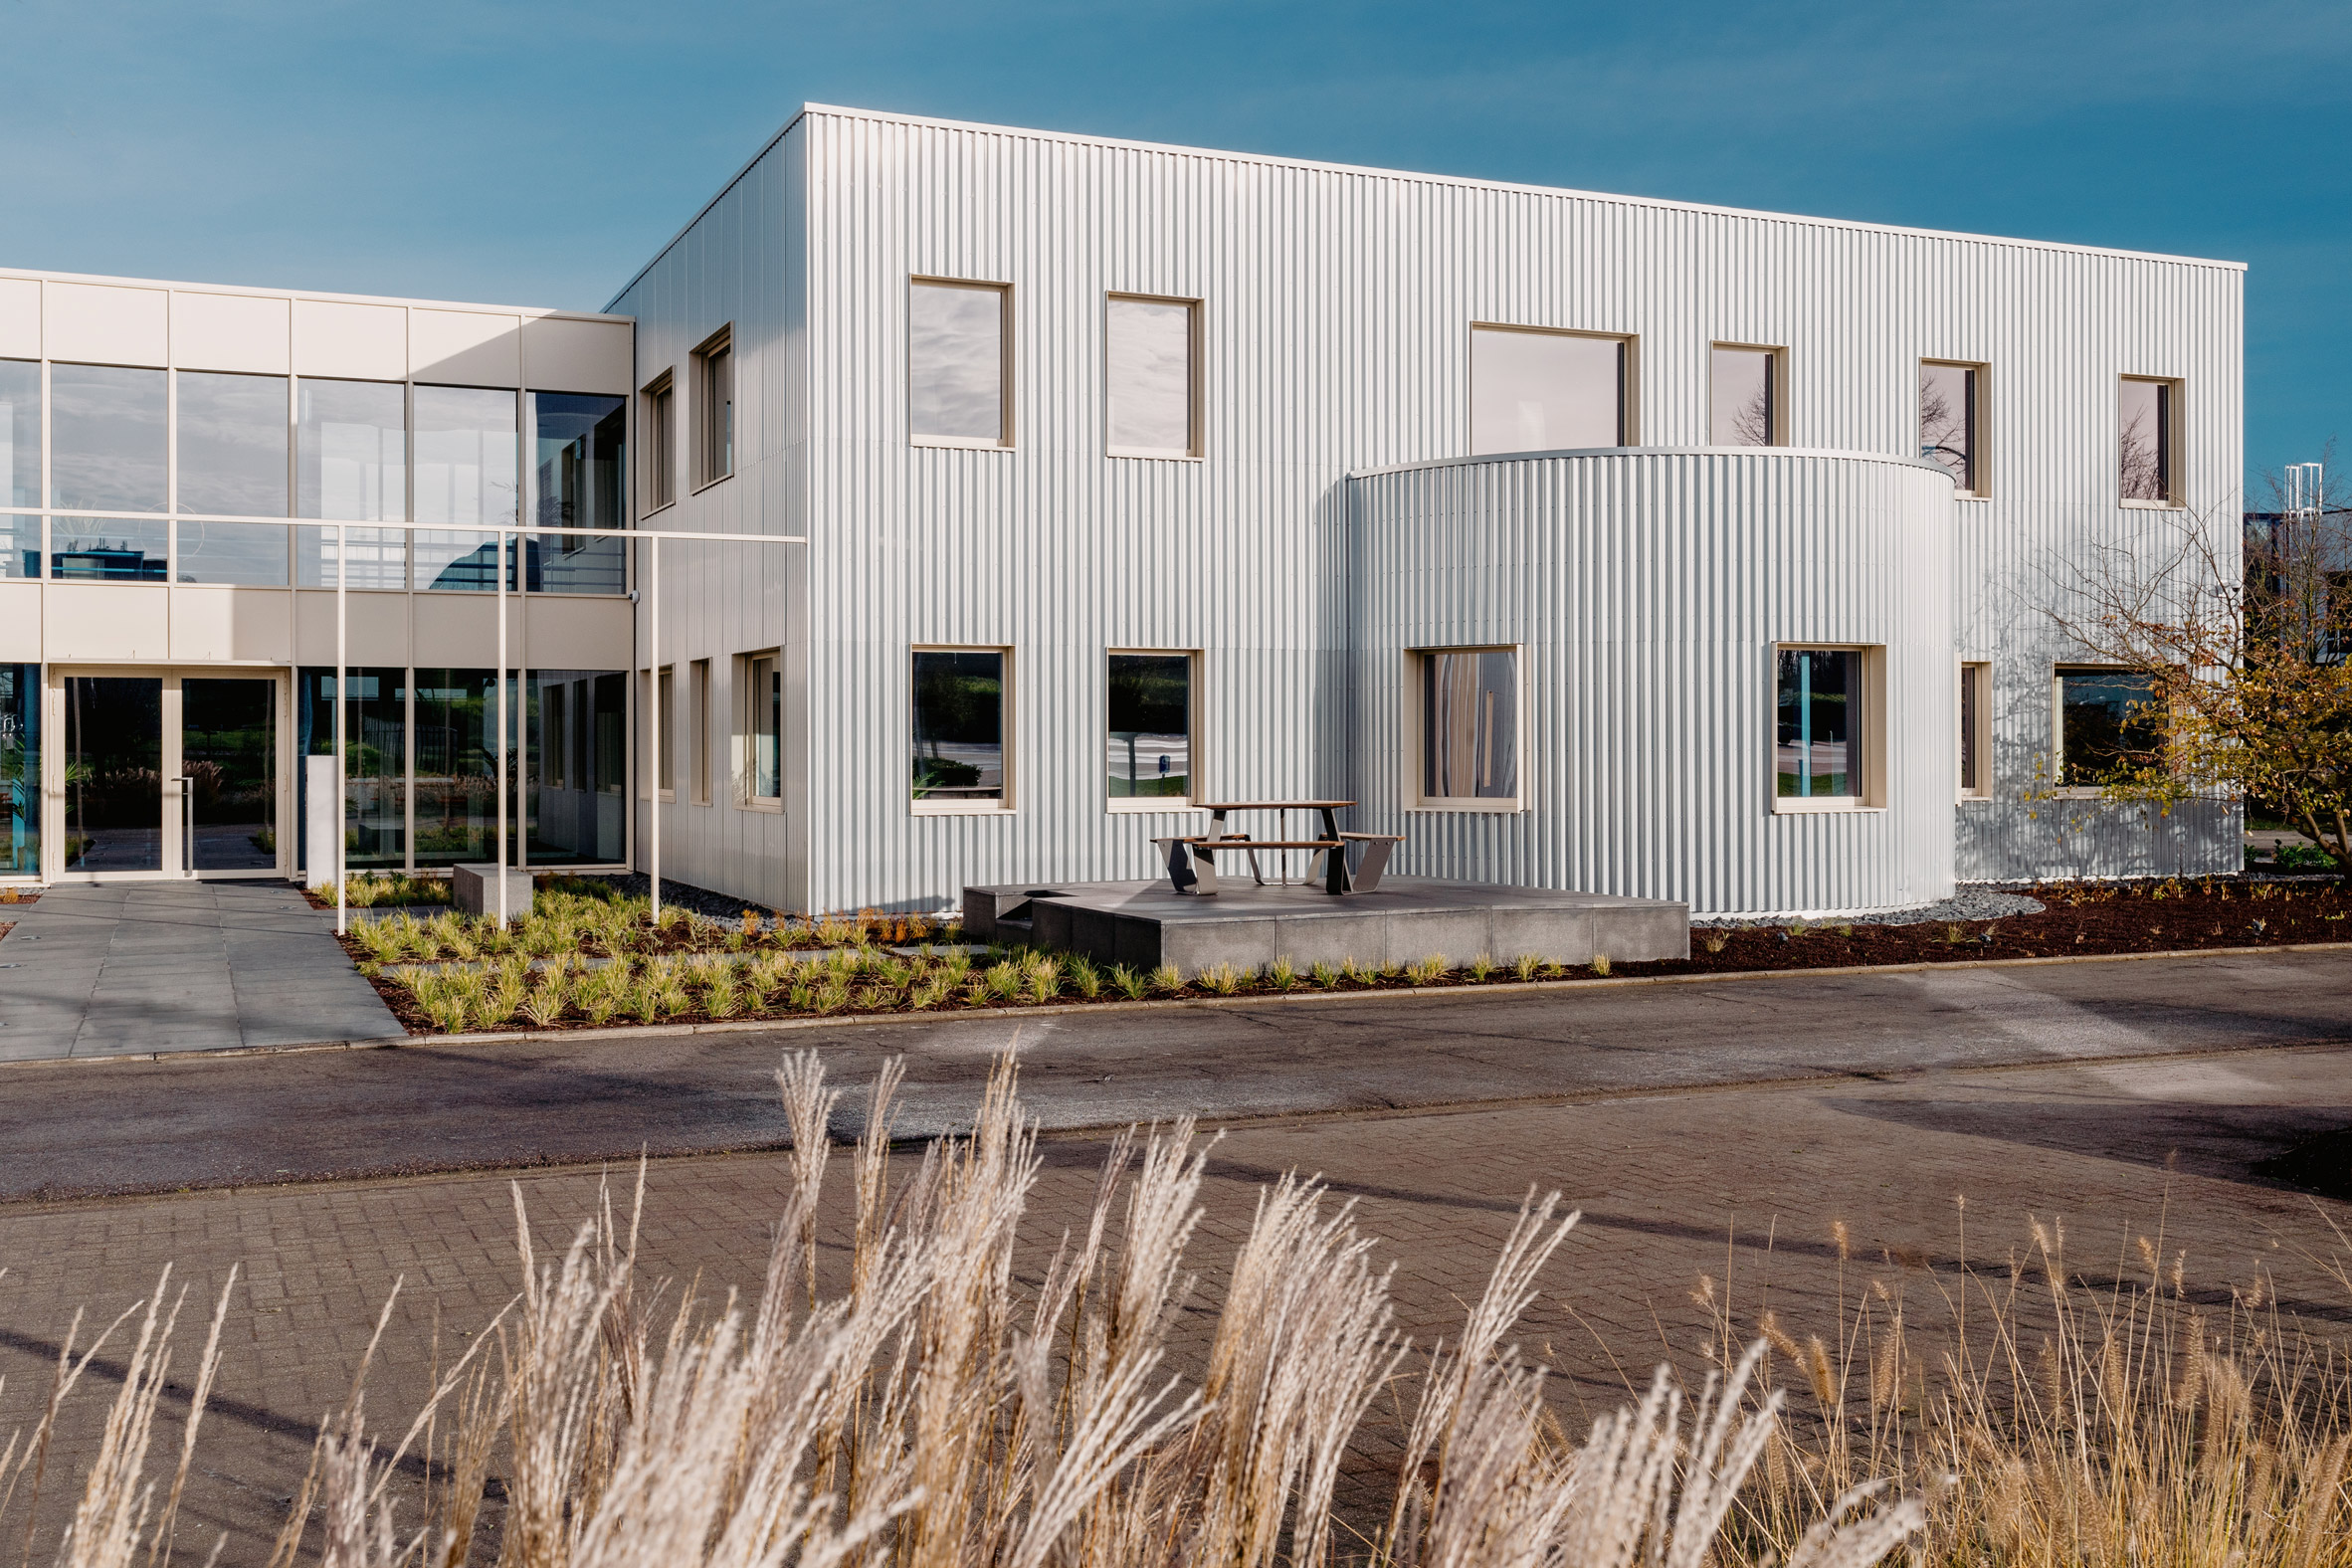 The building has a modular form and is clad in corrugated aluminium